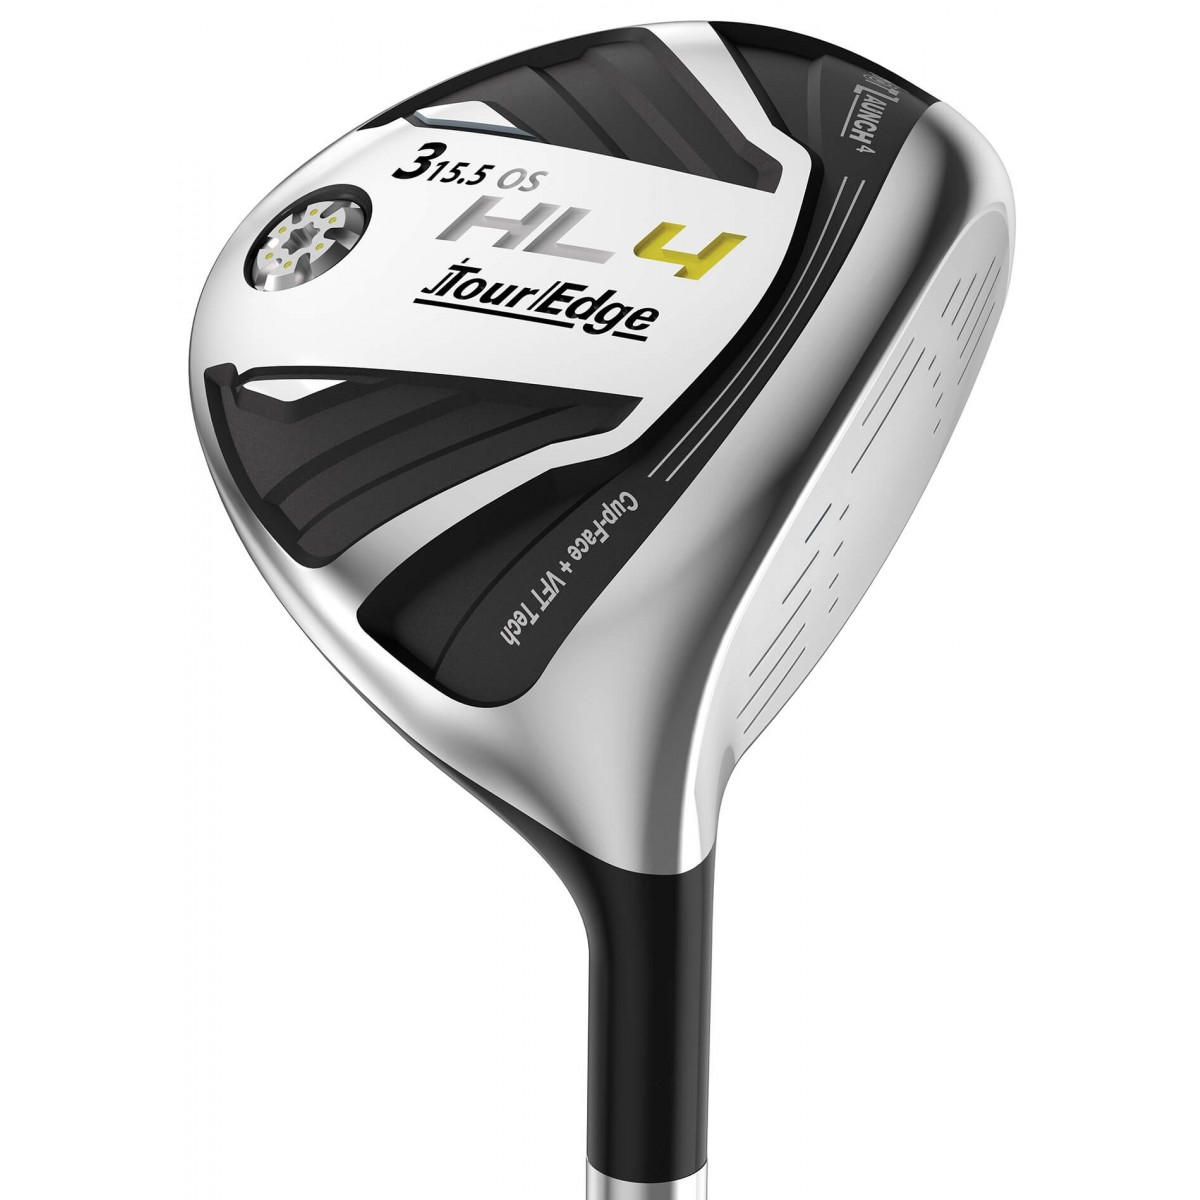 Tour Edge Women's Hot Launch 4 Offset Fairway Woods